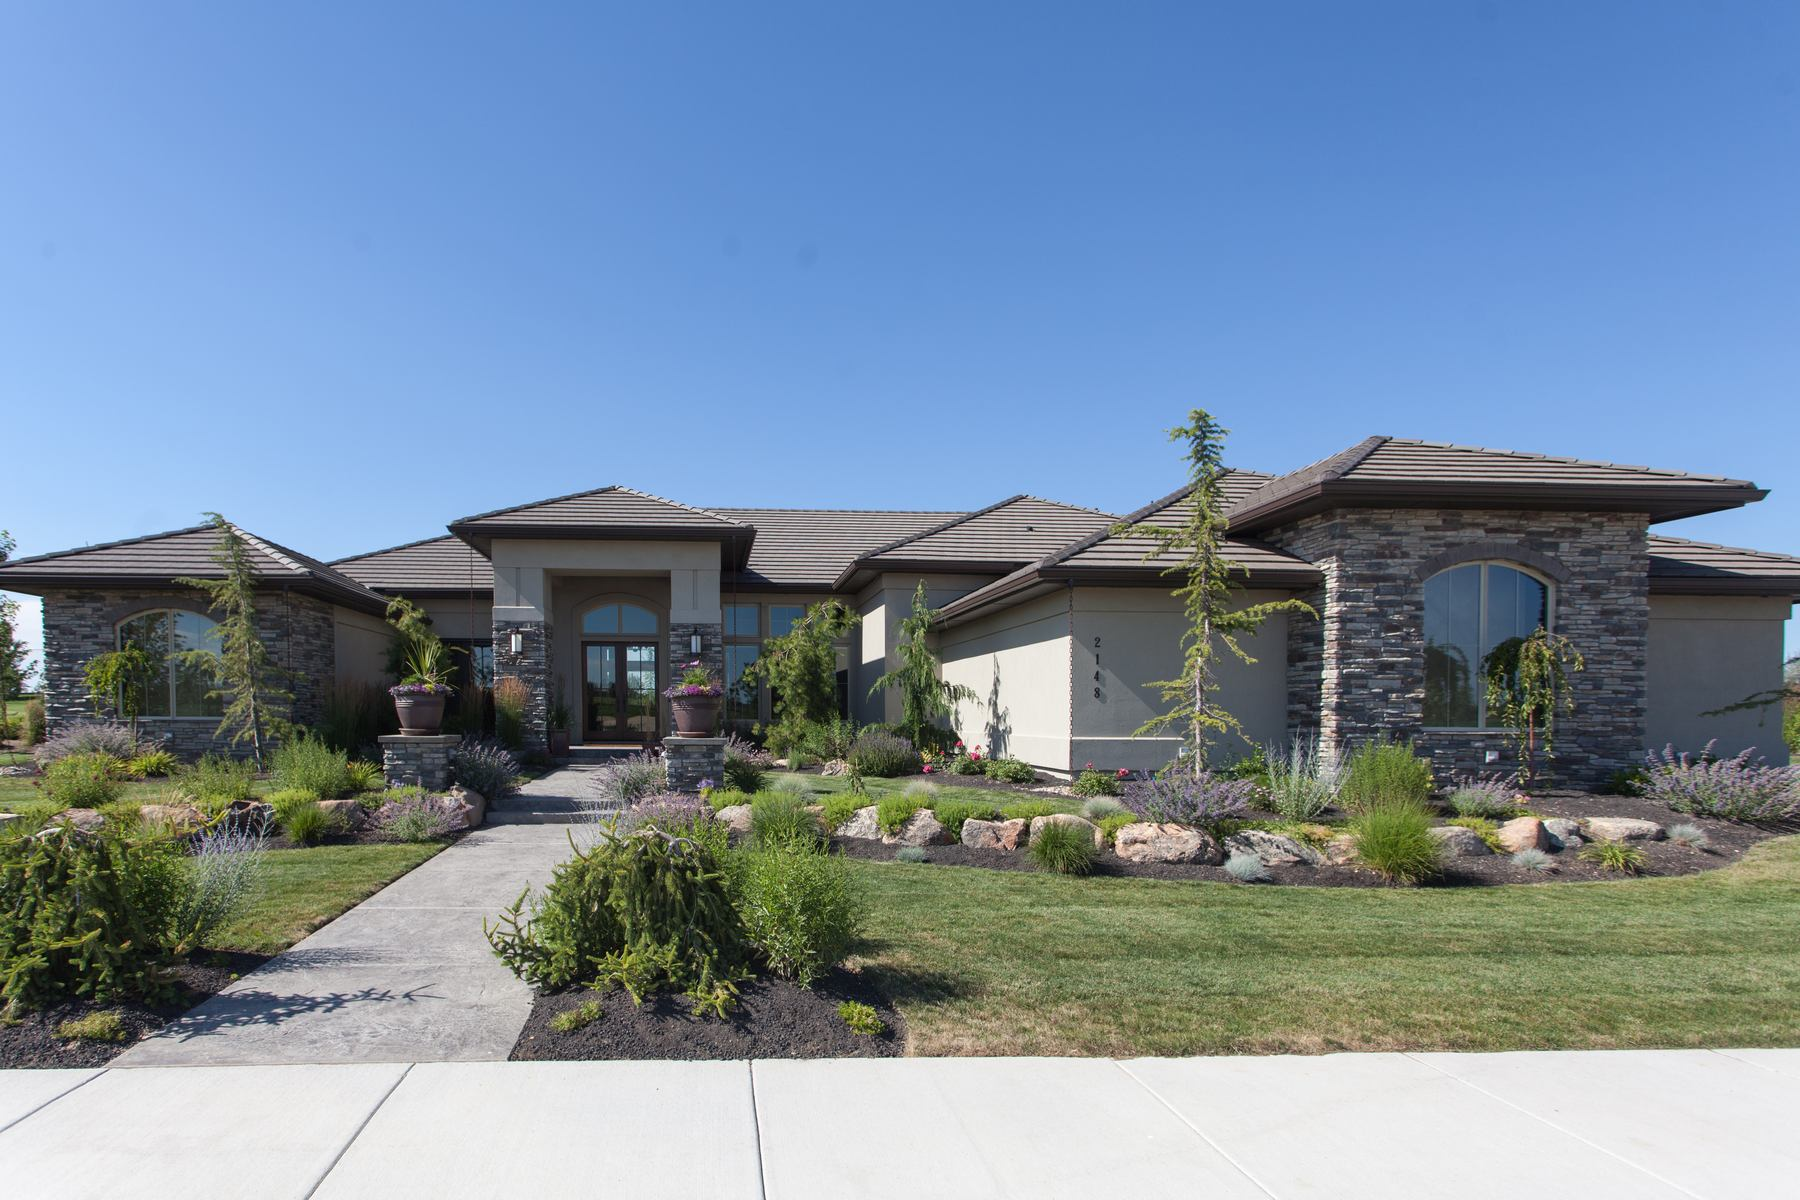 Single Family Home for Sale at 2148 Three Lakes Drive, Meridian 2148 W Three Lakes Dr Meridian, Idaho, 83646 United States